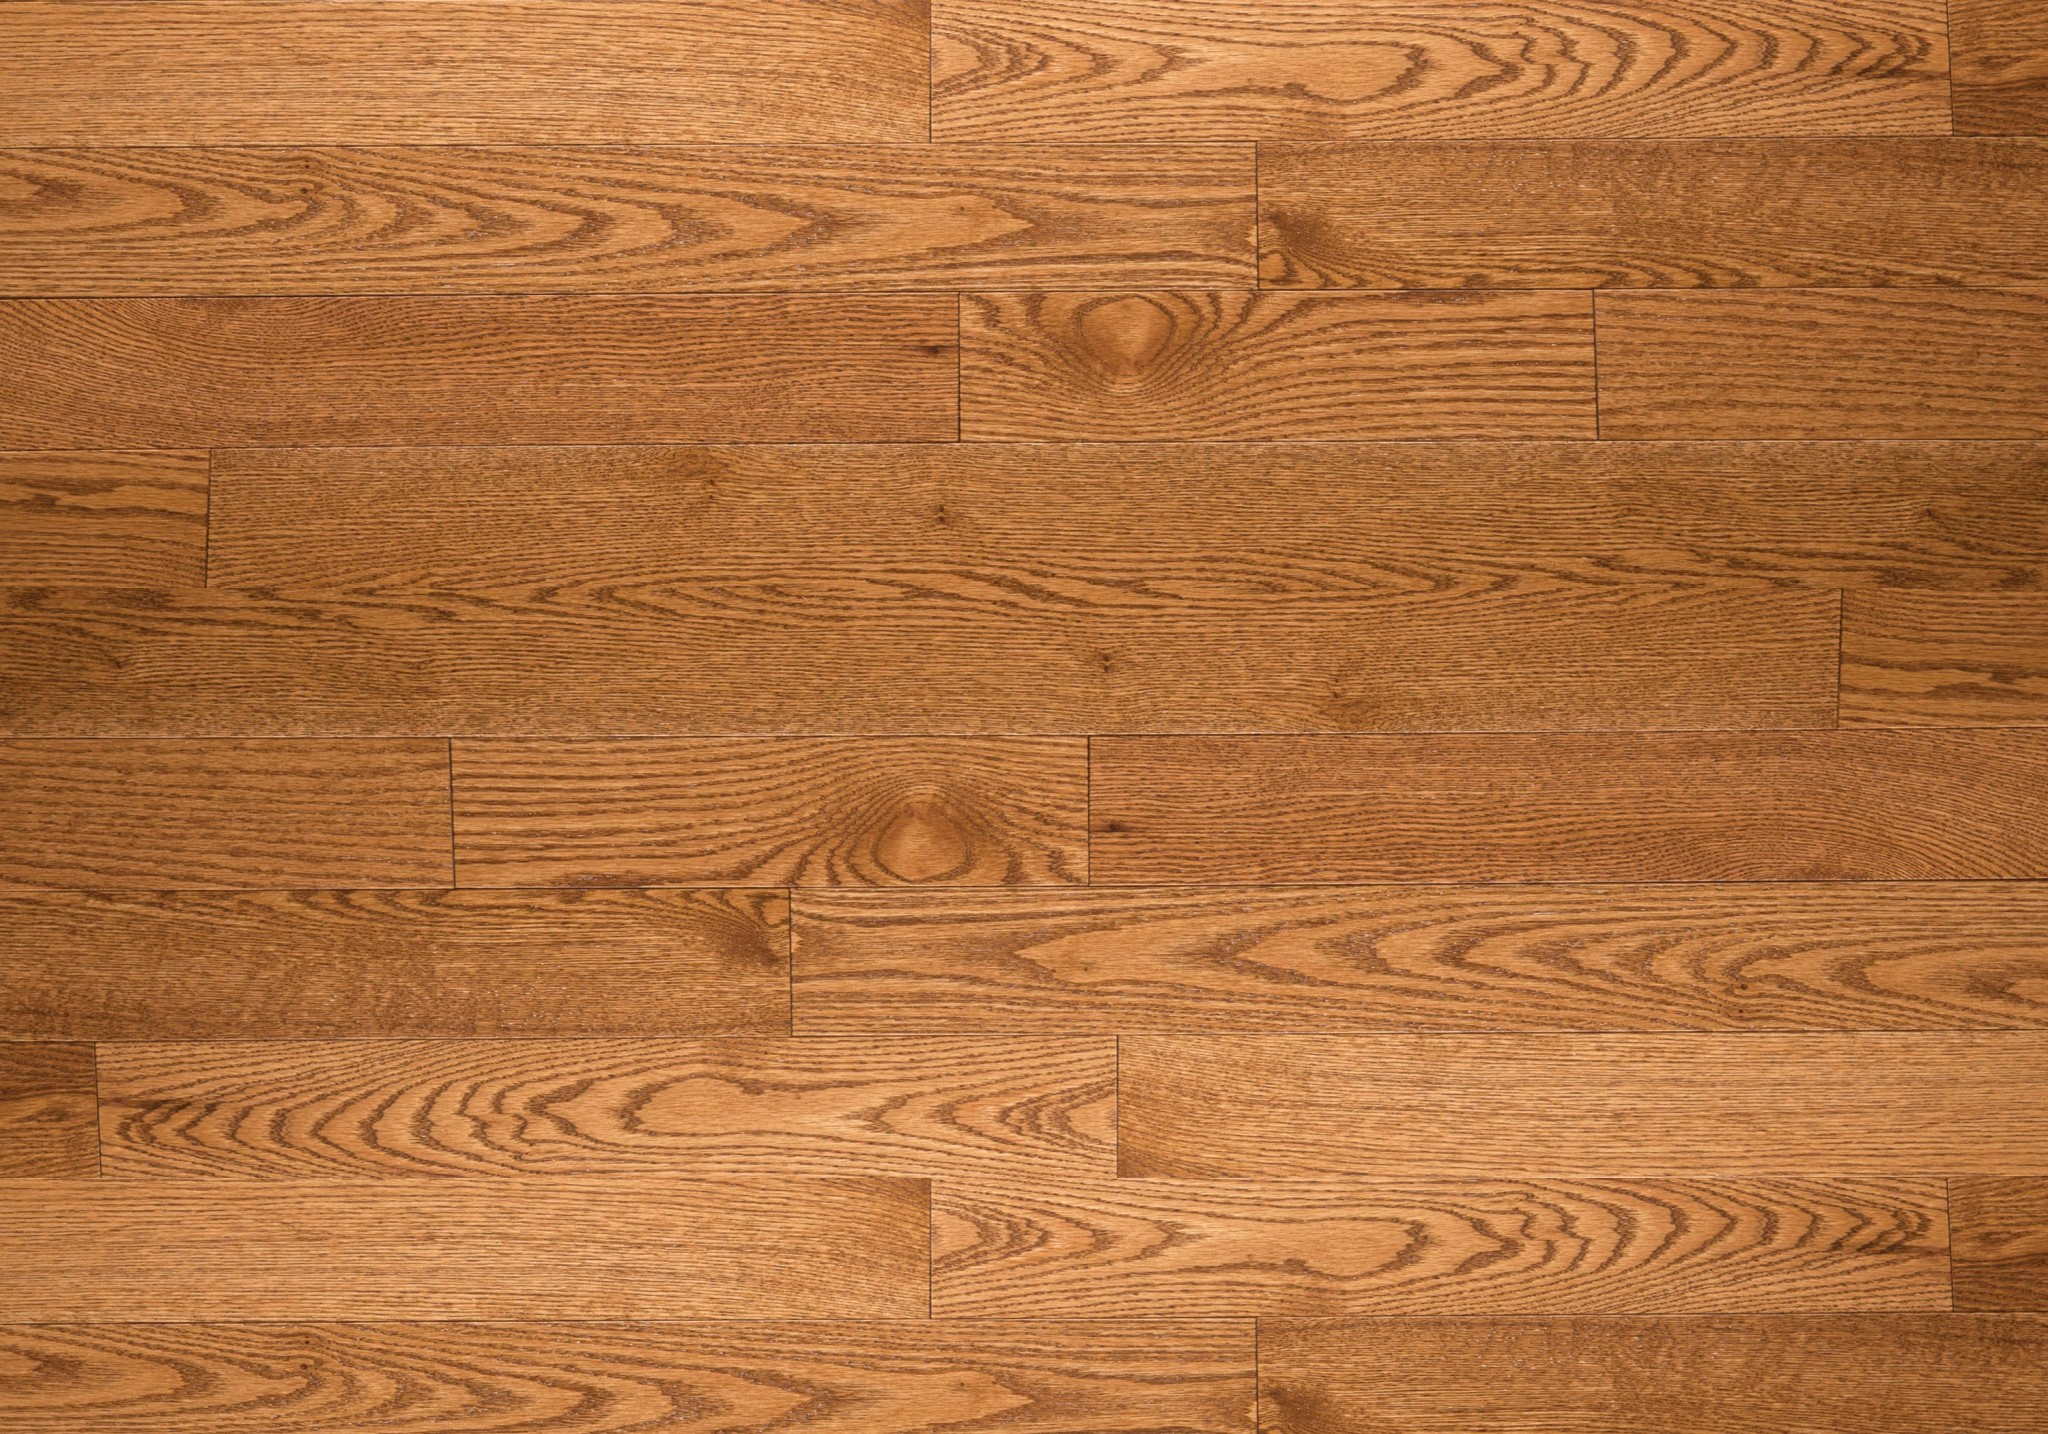 red-oak-hardwood-flooring-brown-sahara-ambiance-lauzon